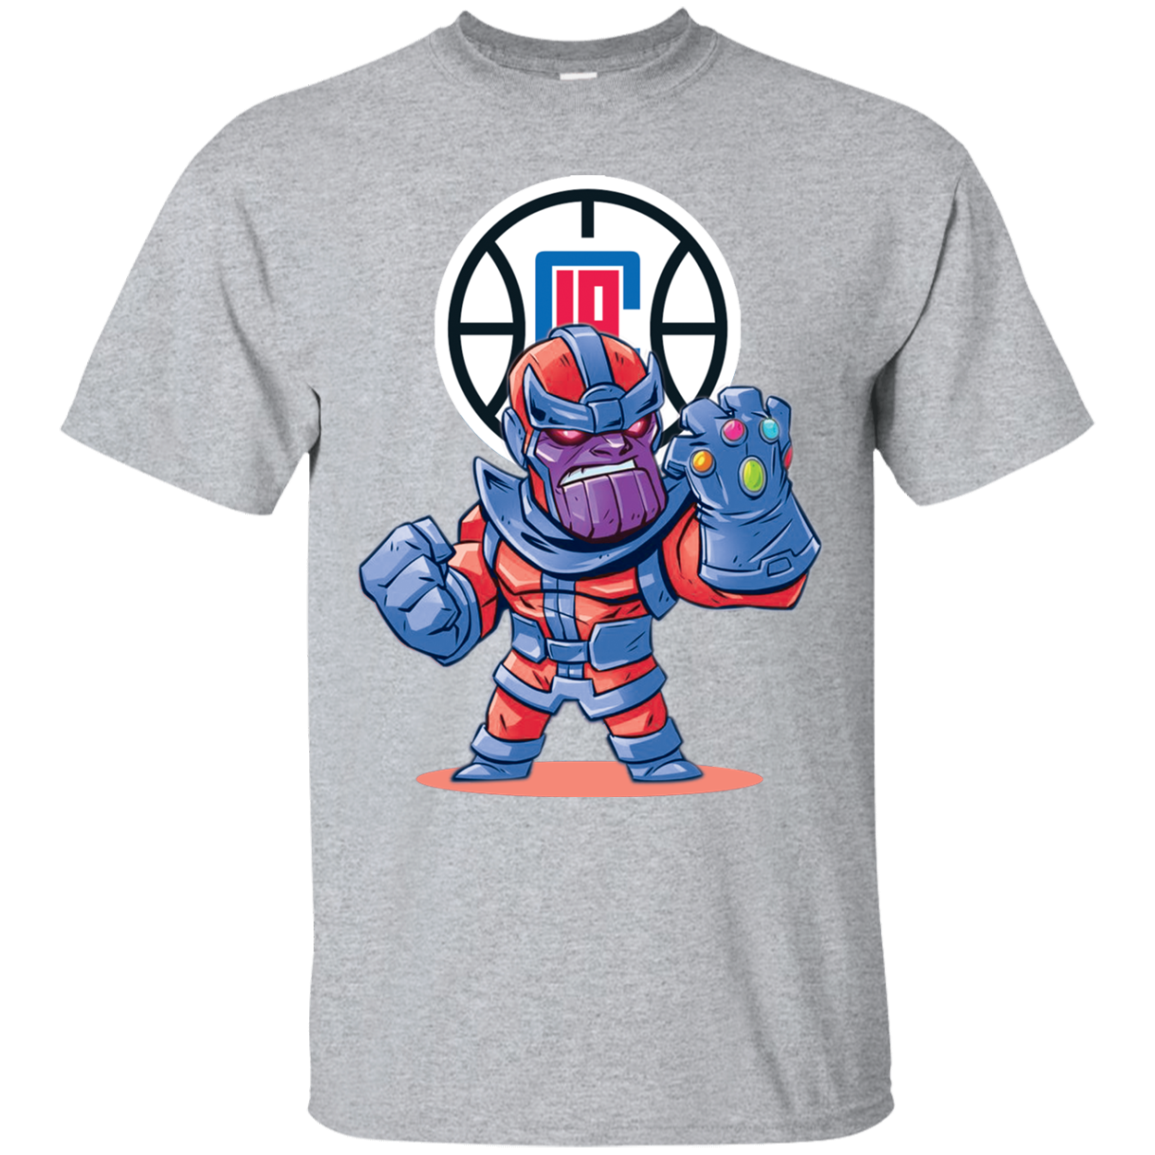 Get Here Shirt For Thanos And La Clippers Fans